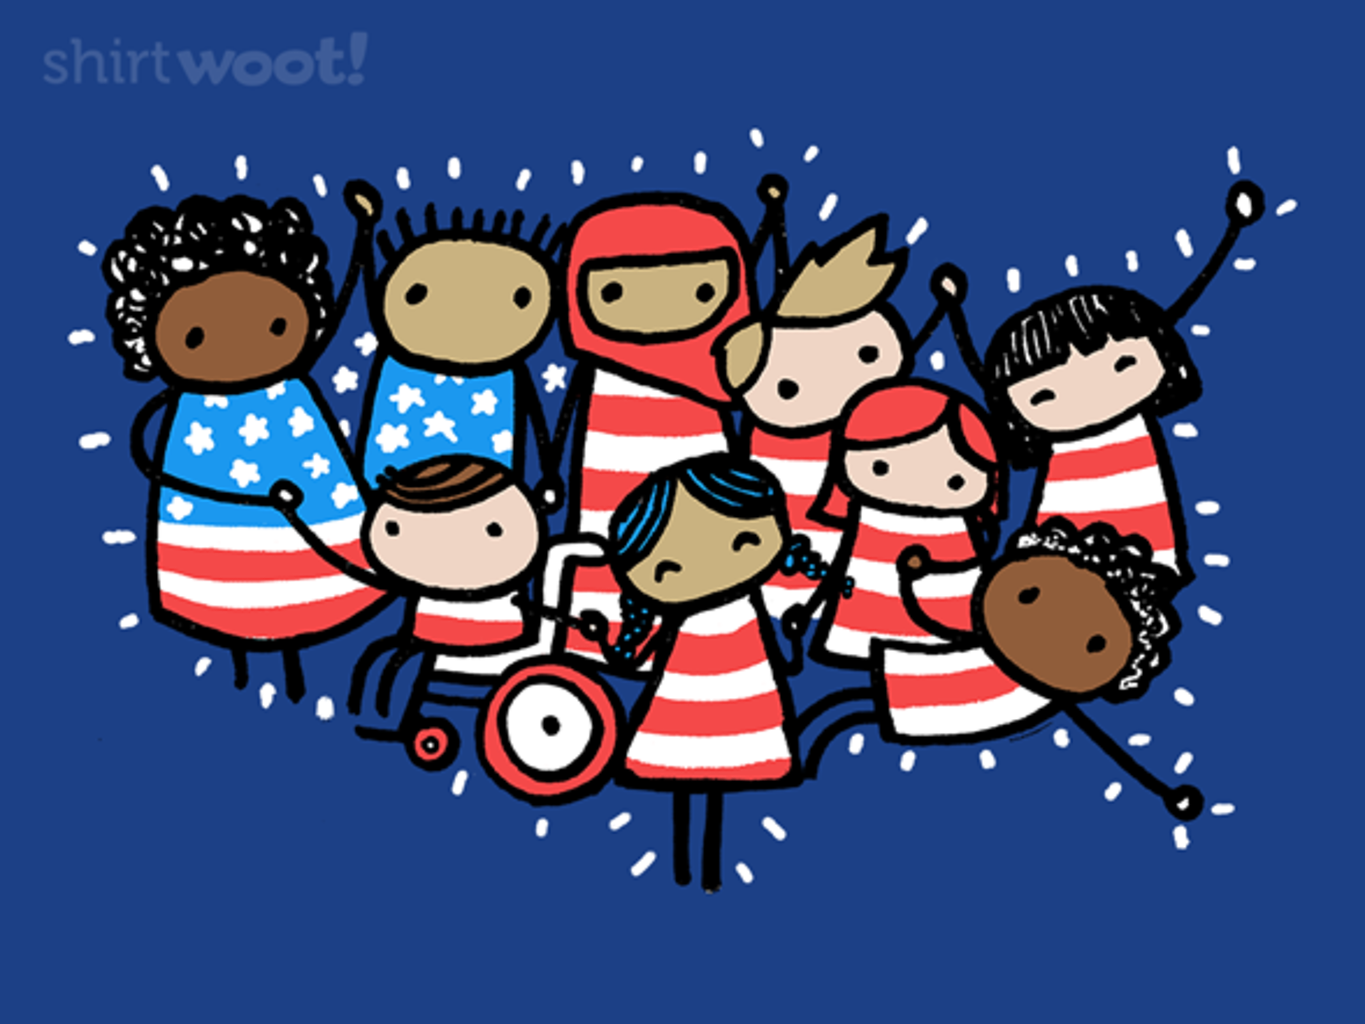 Woot!: We Are America